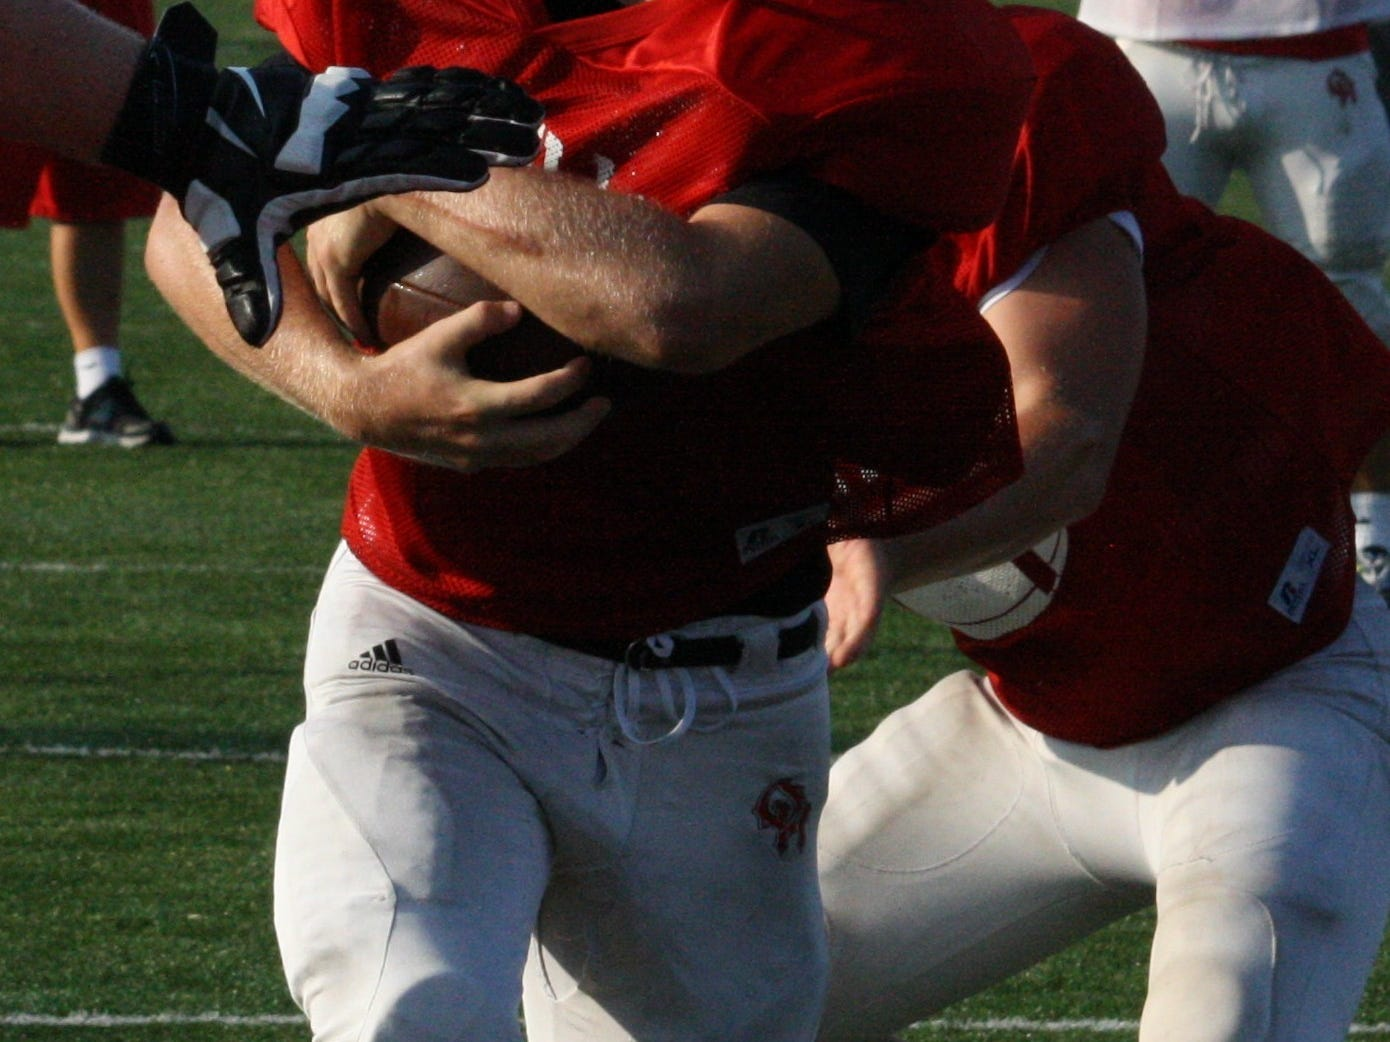 Oak Hills High School senior running back Brock Schubert takes the handoff up the middle during practice Aug. 20 at Oak Hills. Schubert will assume the starting running back duties after only receiving 16 carries in 2013.